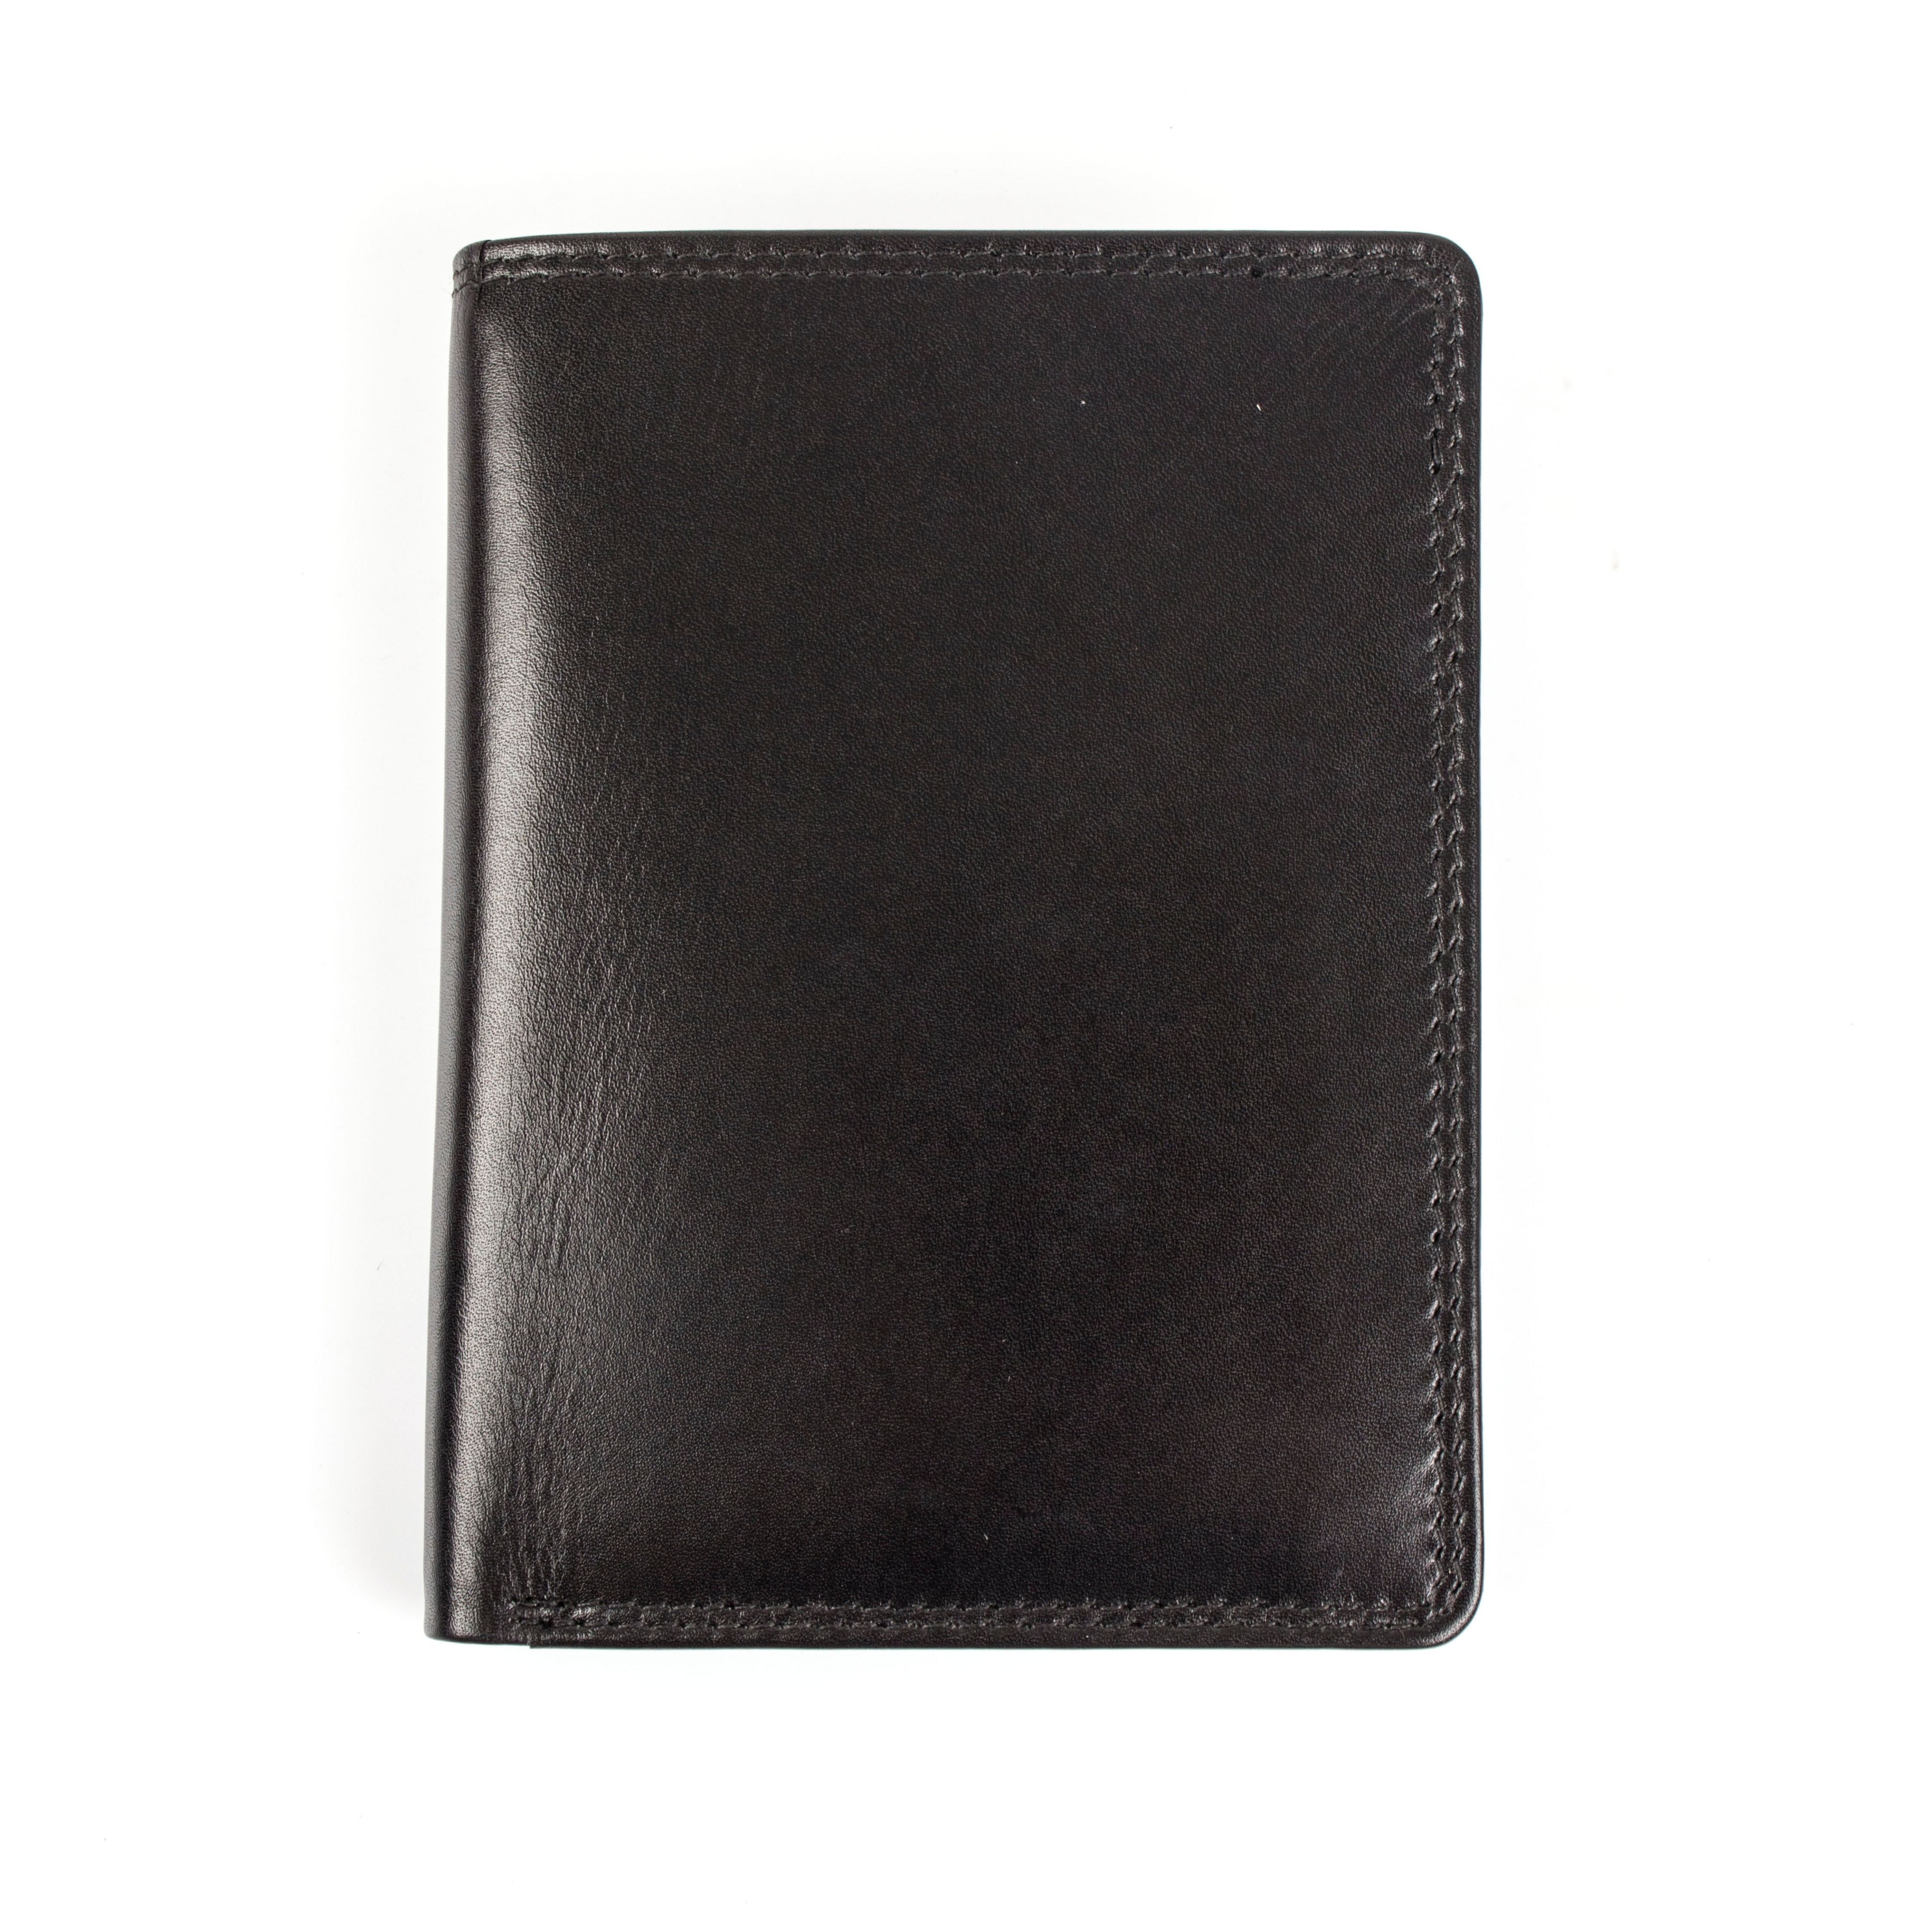 Dents Dents Mens leather wallet with contrast lined, Black